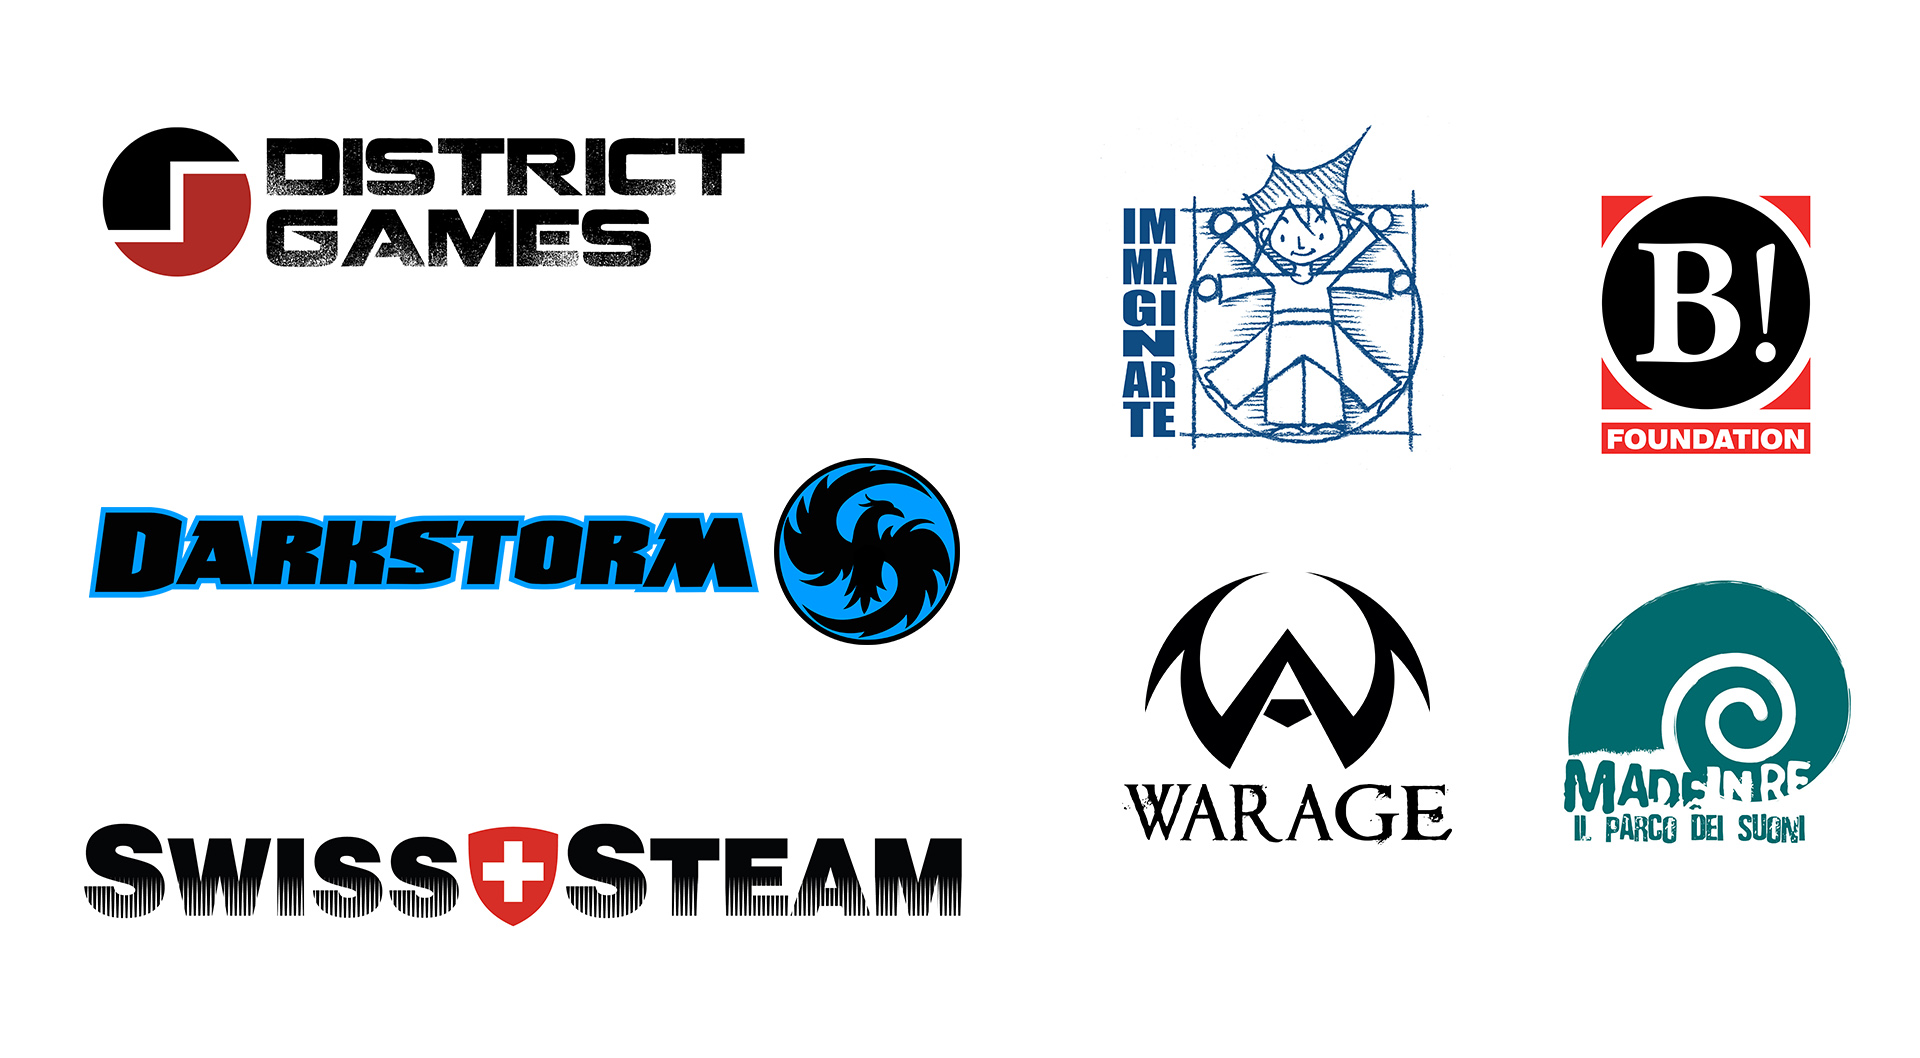 Logo Design - All product names, logos, and brands are property of their respective owners